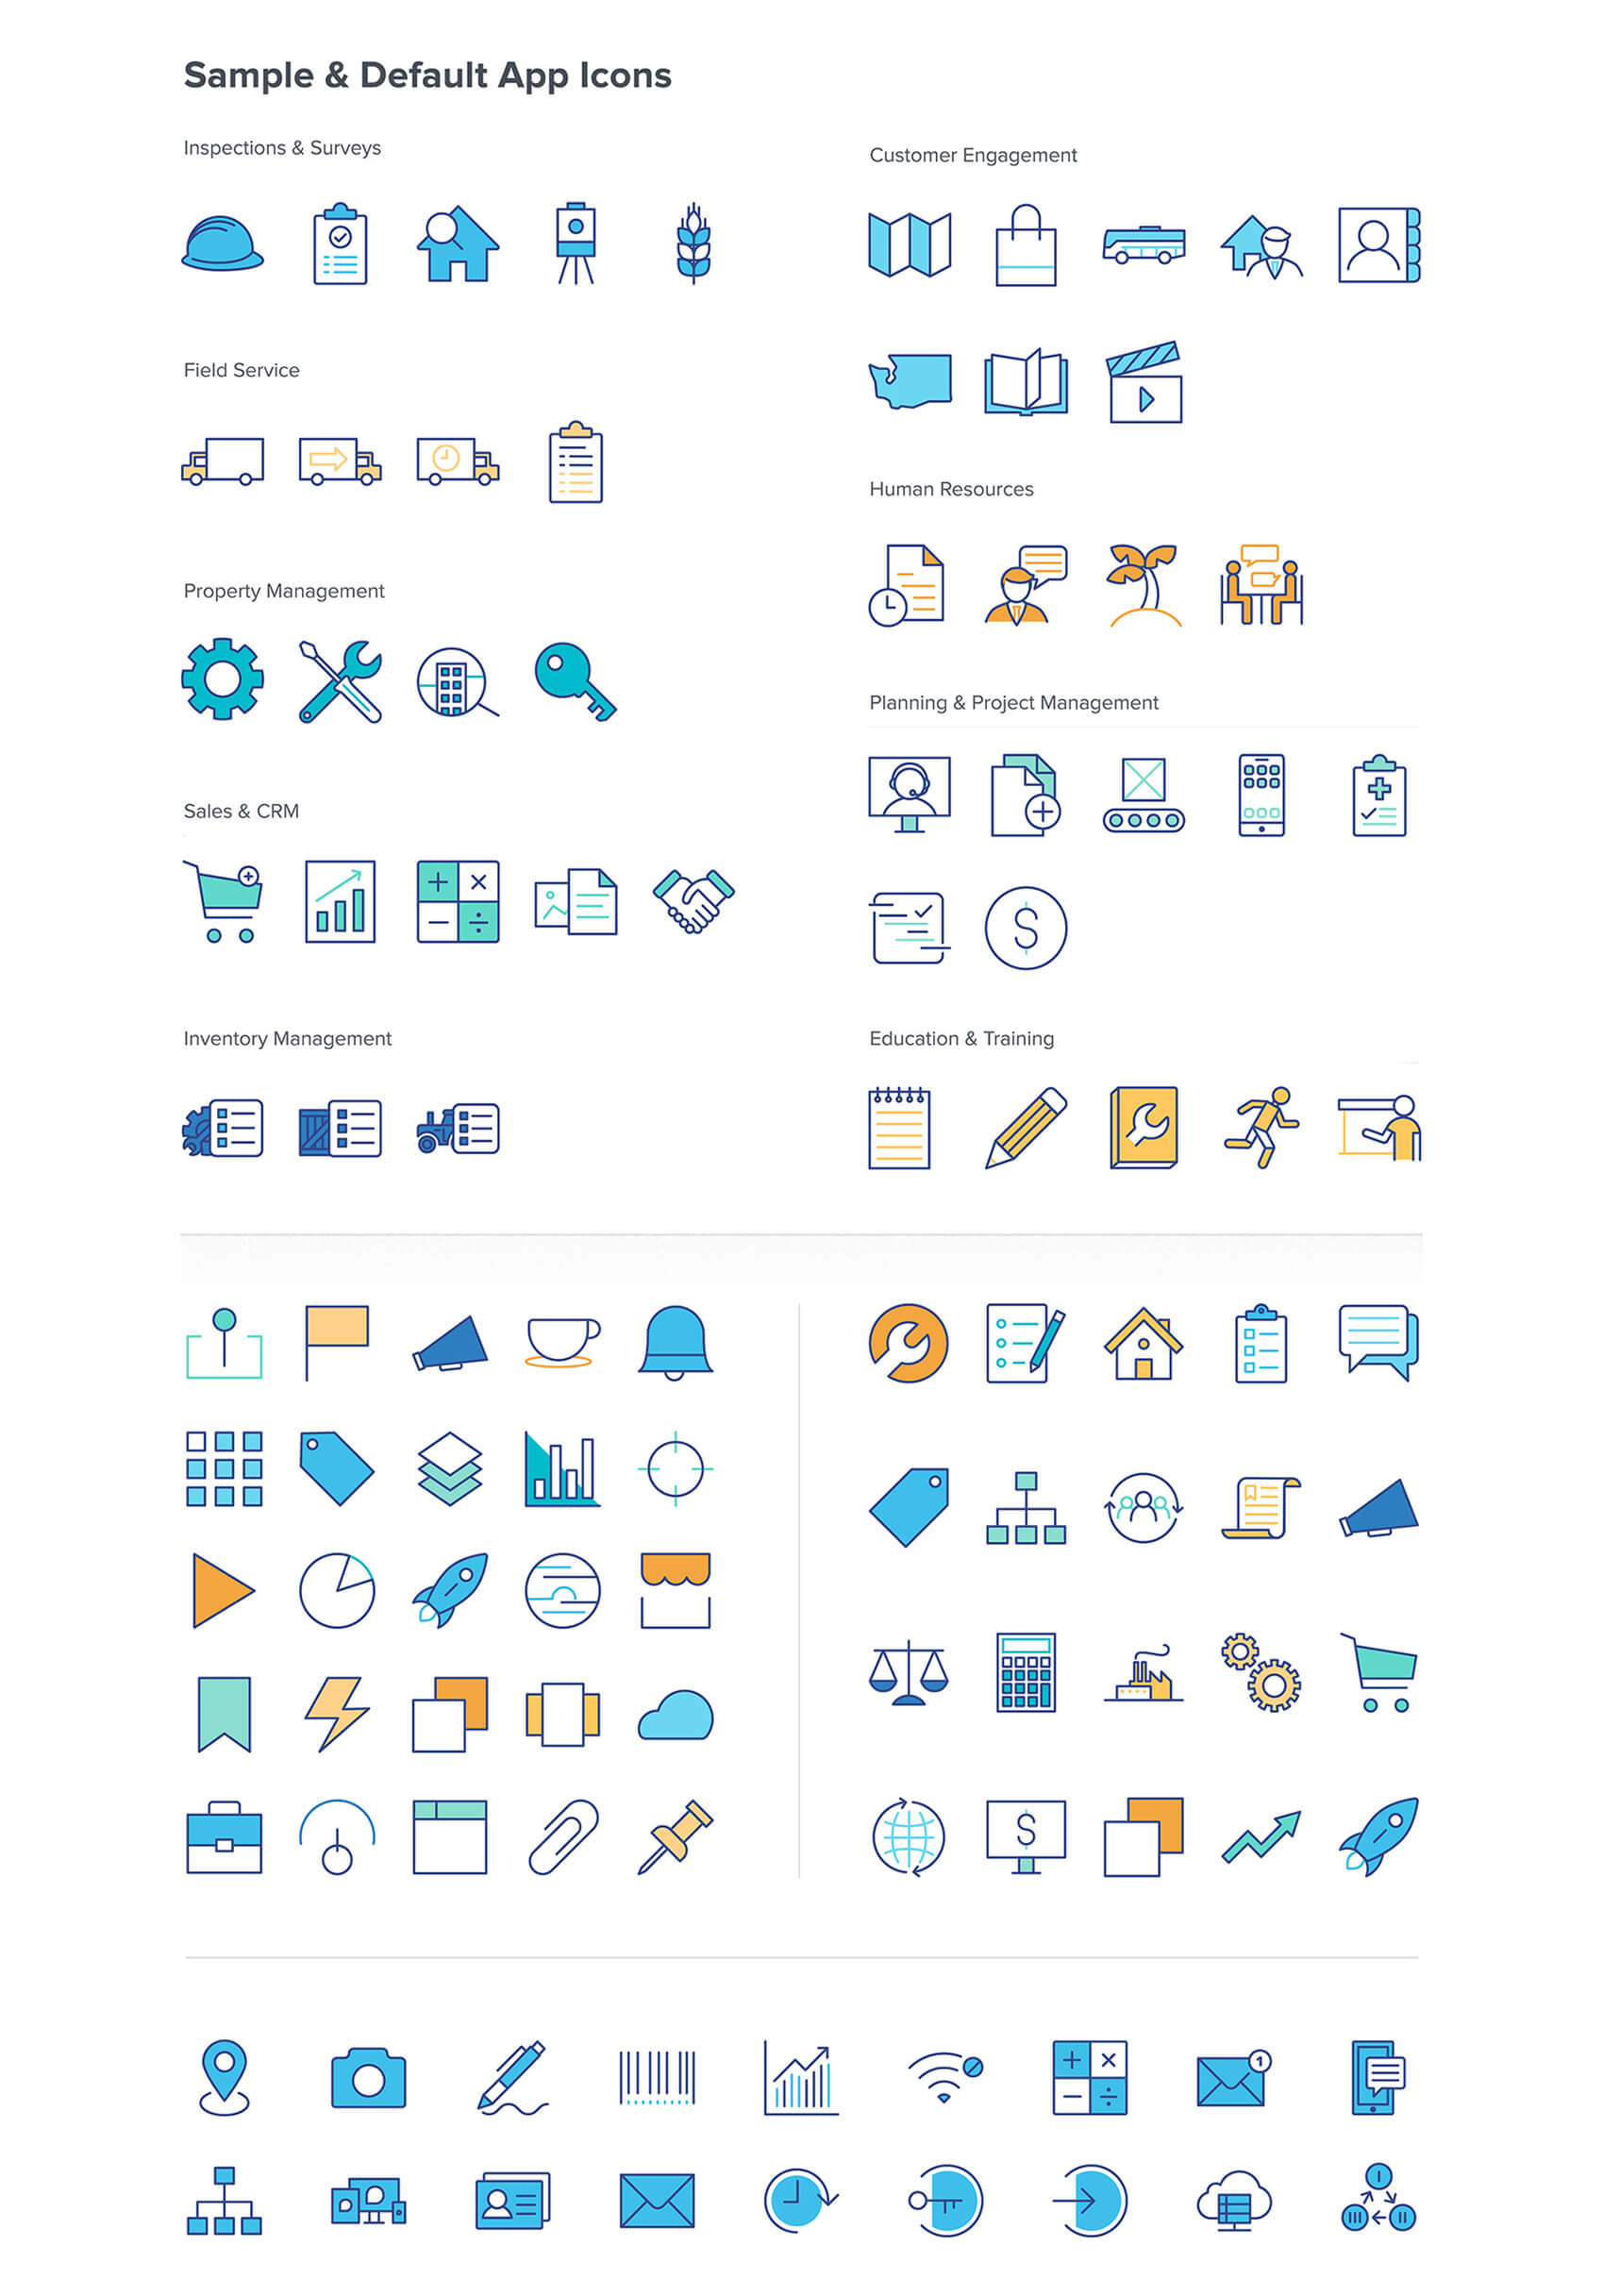 icons-generic-v3-combined-smaller.jpg